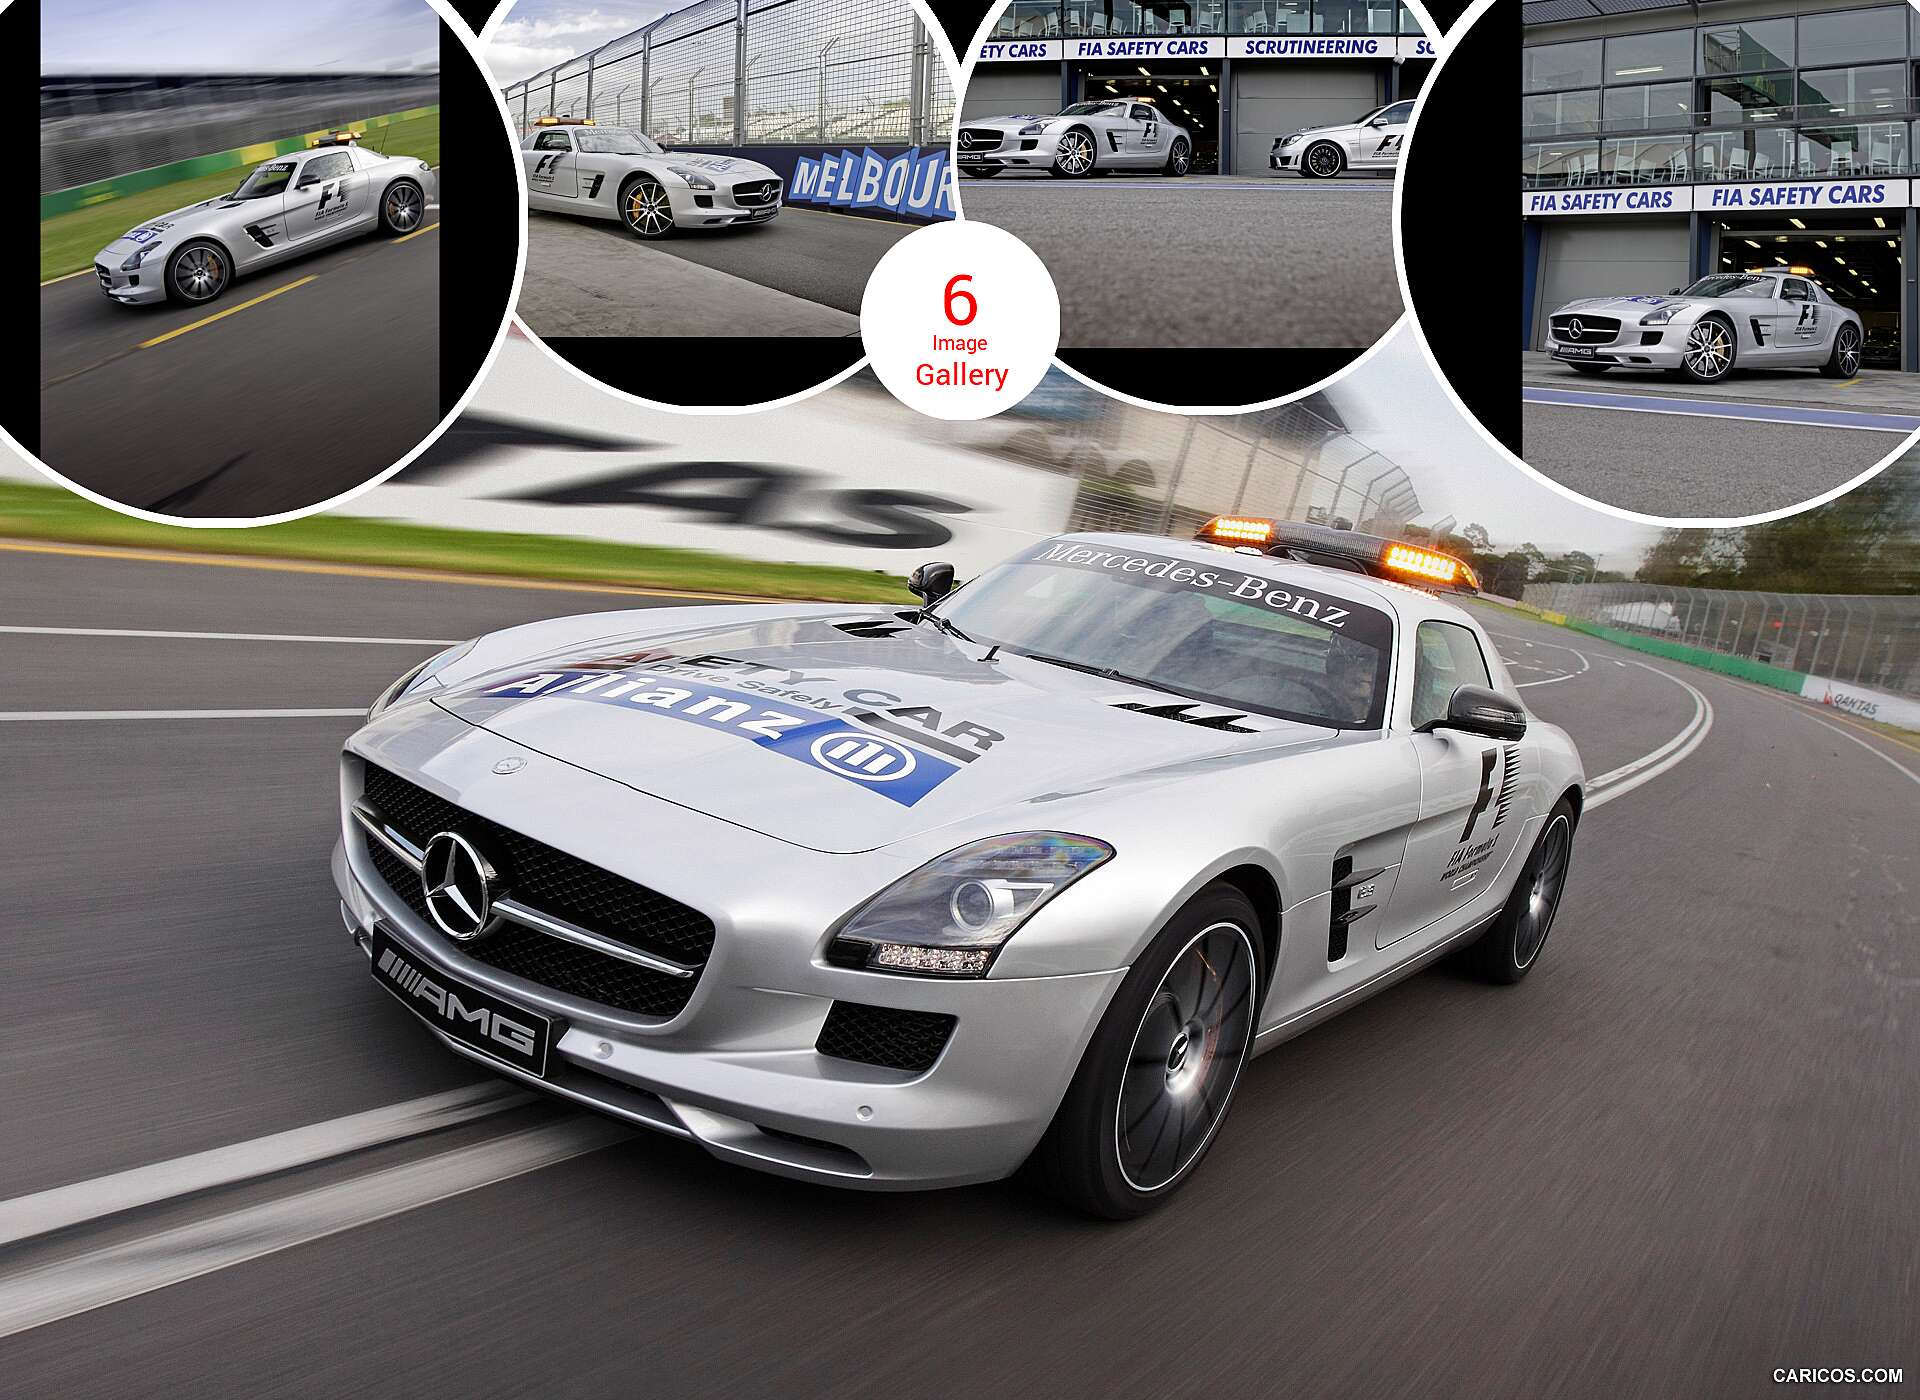 2013 mercedes benz sls amg gt f1 safety car for Mercedes benz f1